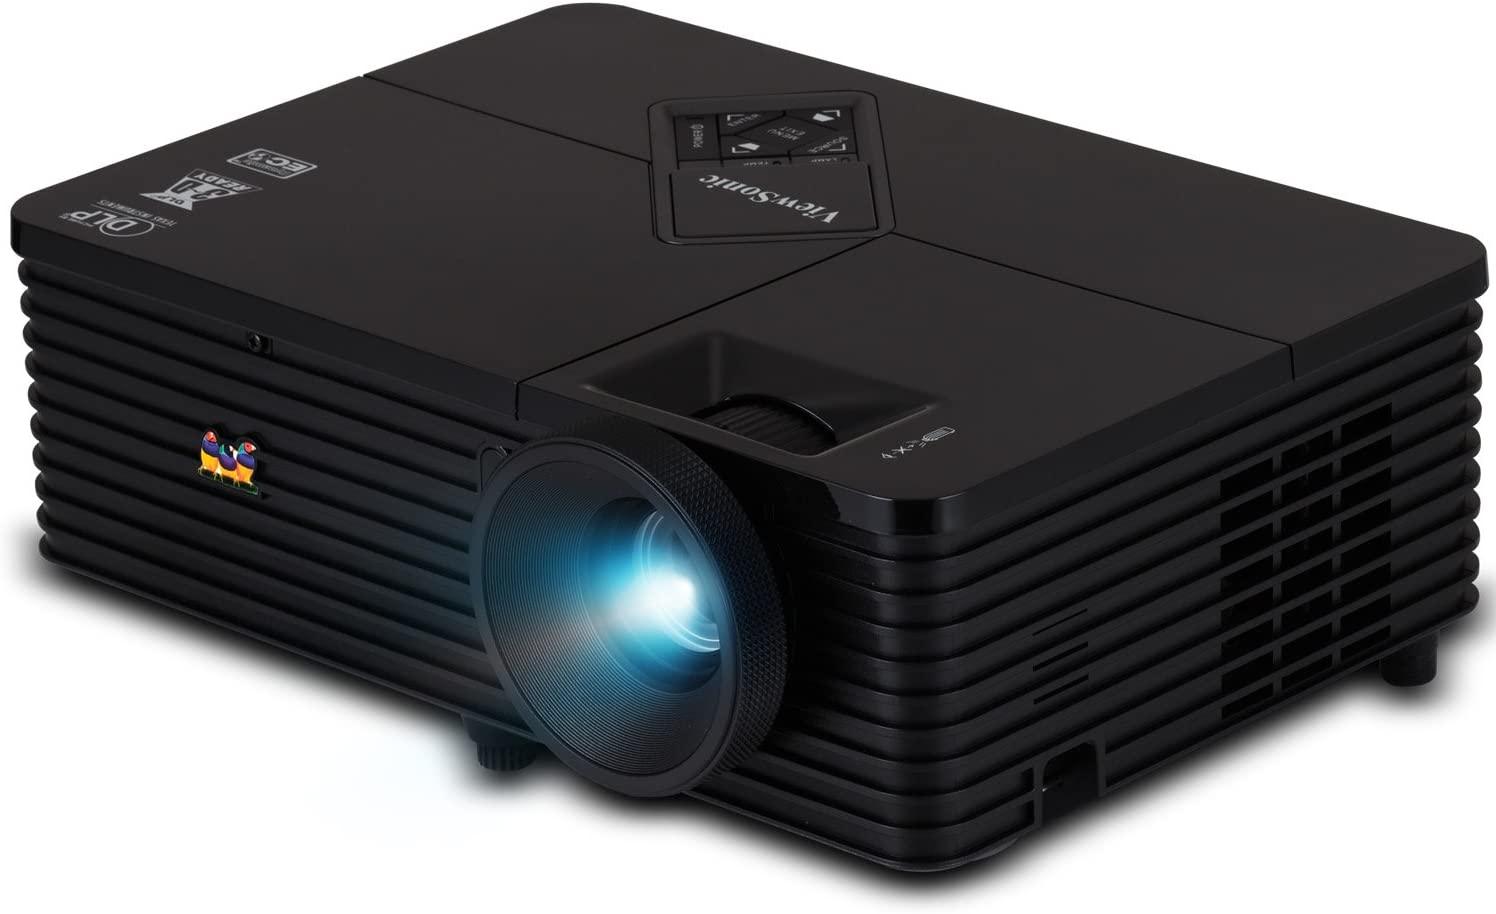 Amazon.com: ViewSonic PJD5234 XGA DLP Projector, 2800 ANSI ...